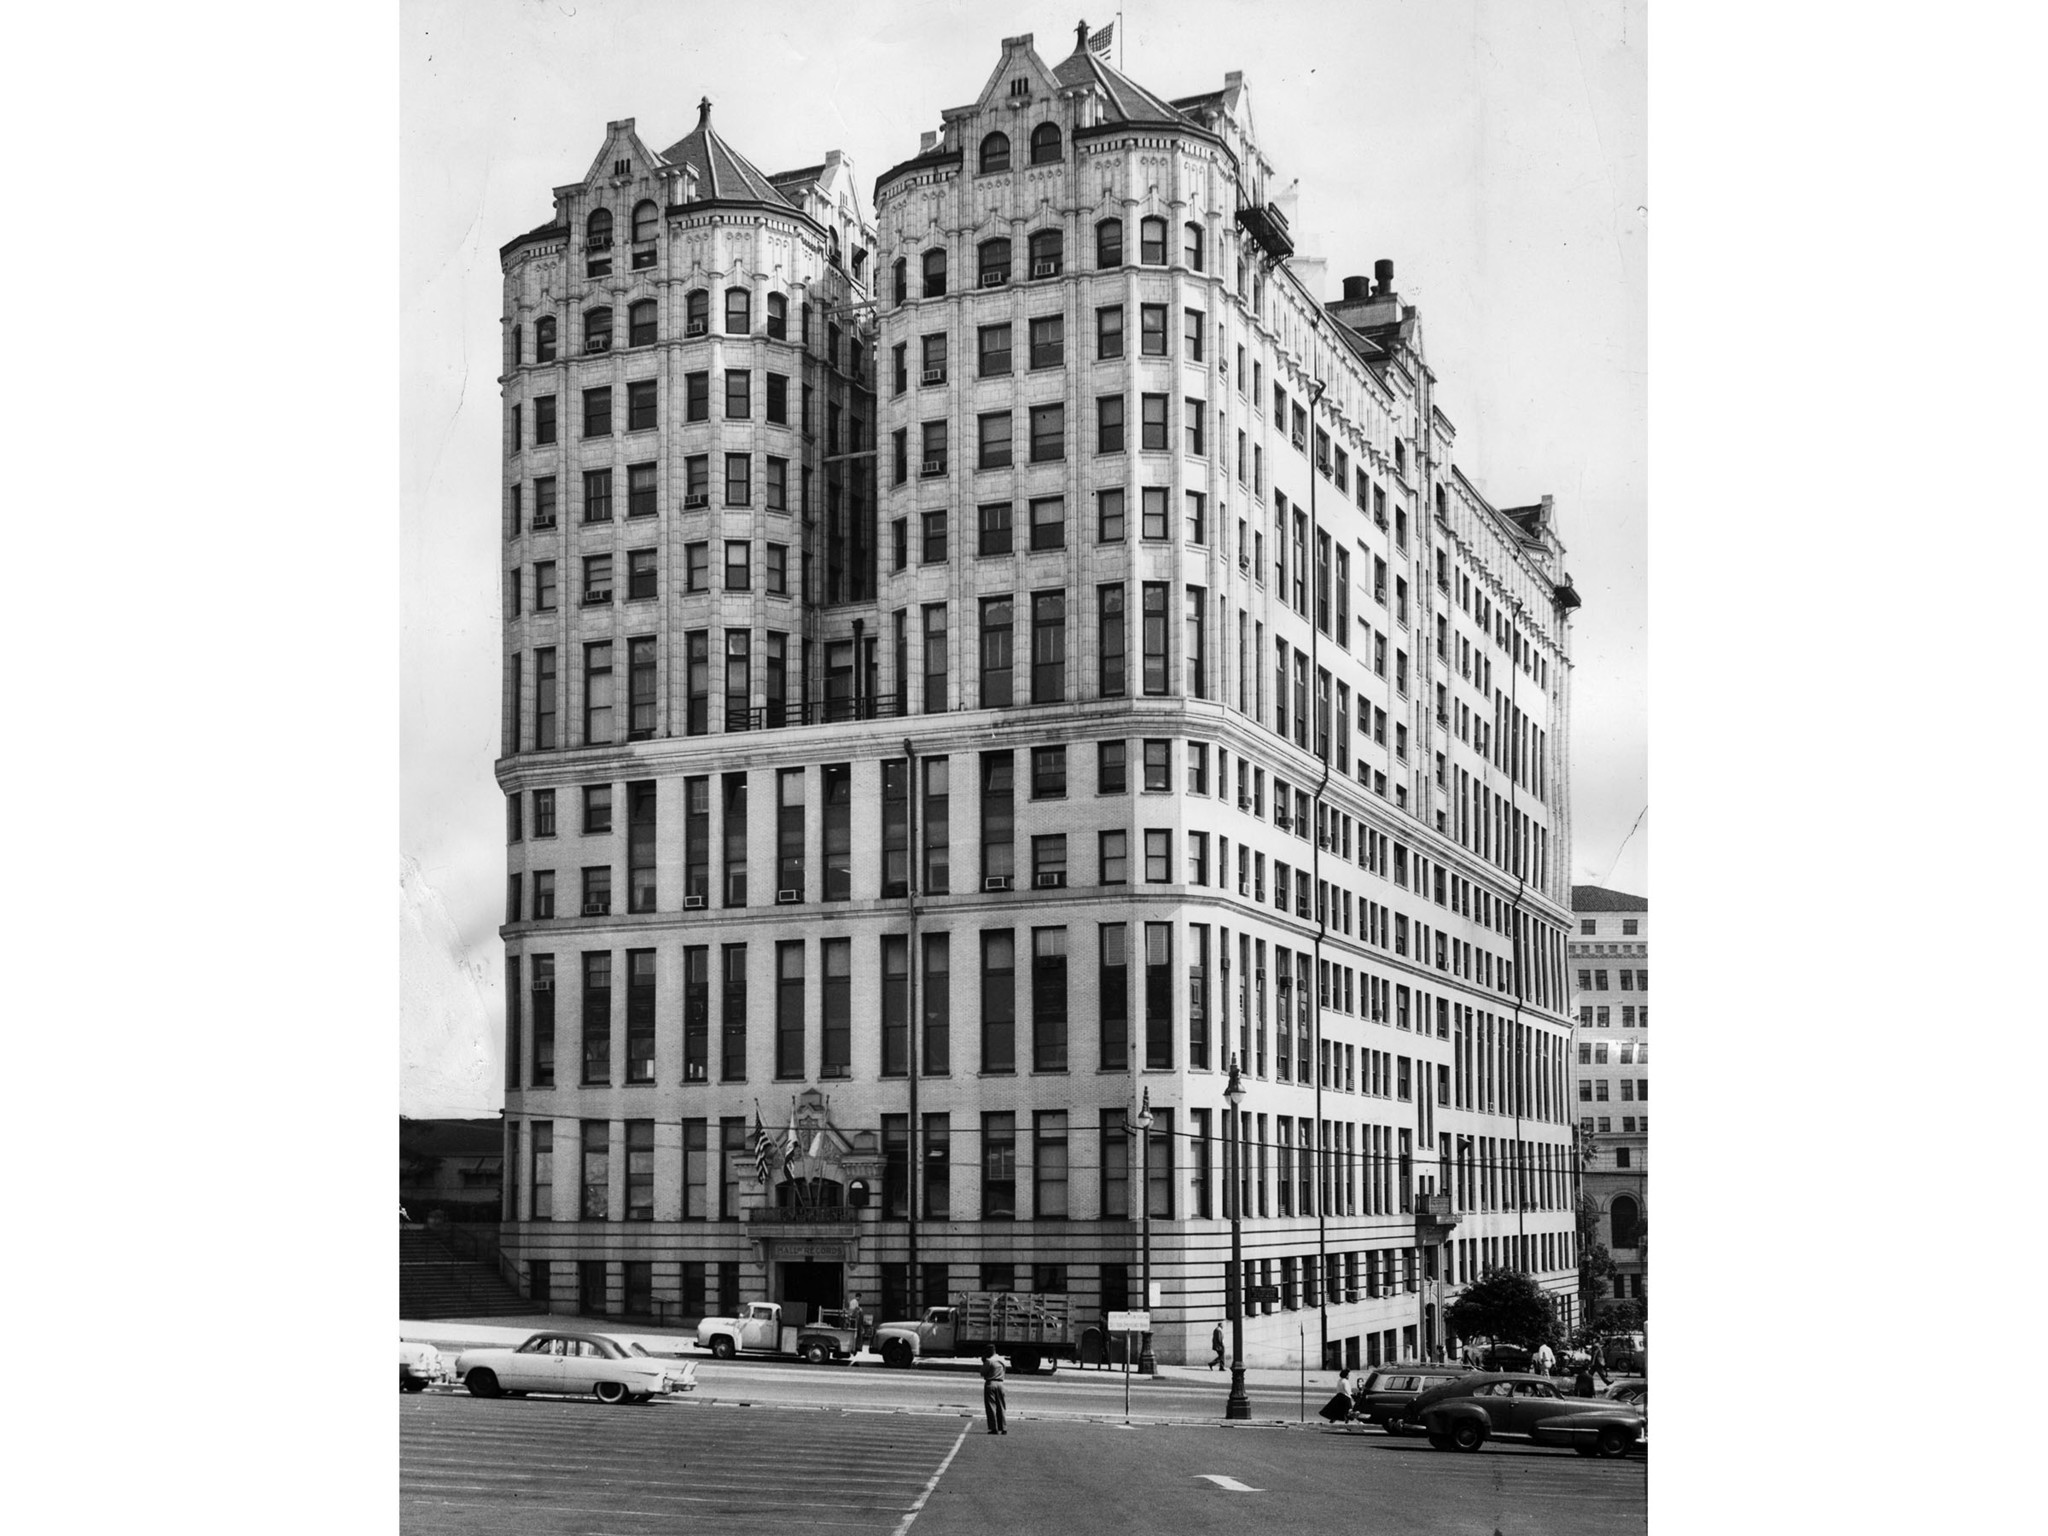 March 27, 1959: The Los Angeles County Hall of Records was completed in 1911. This photo was publish